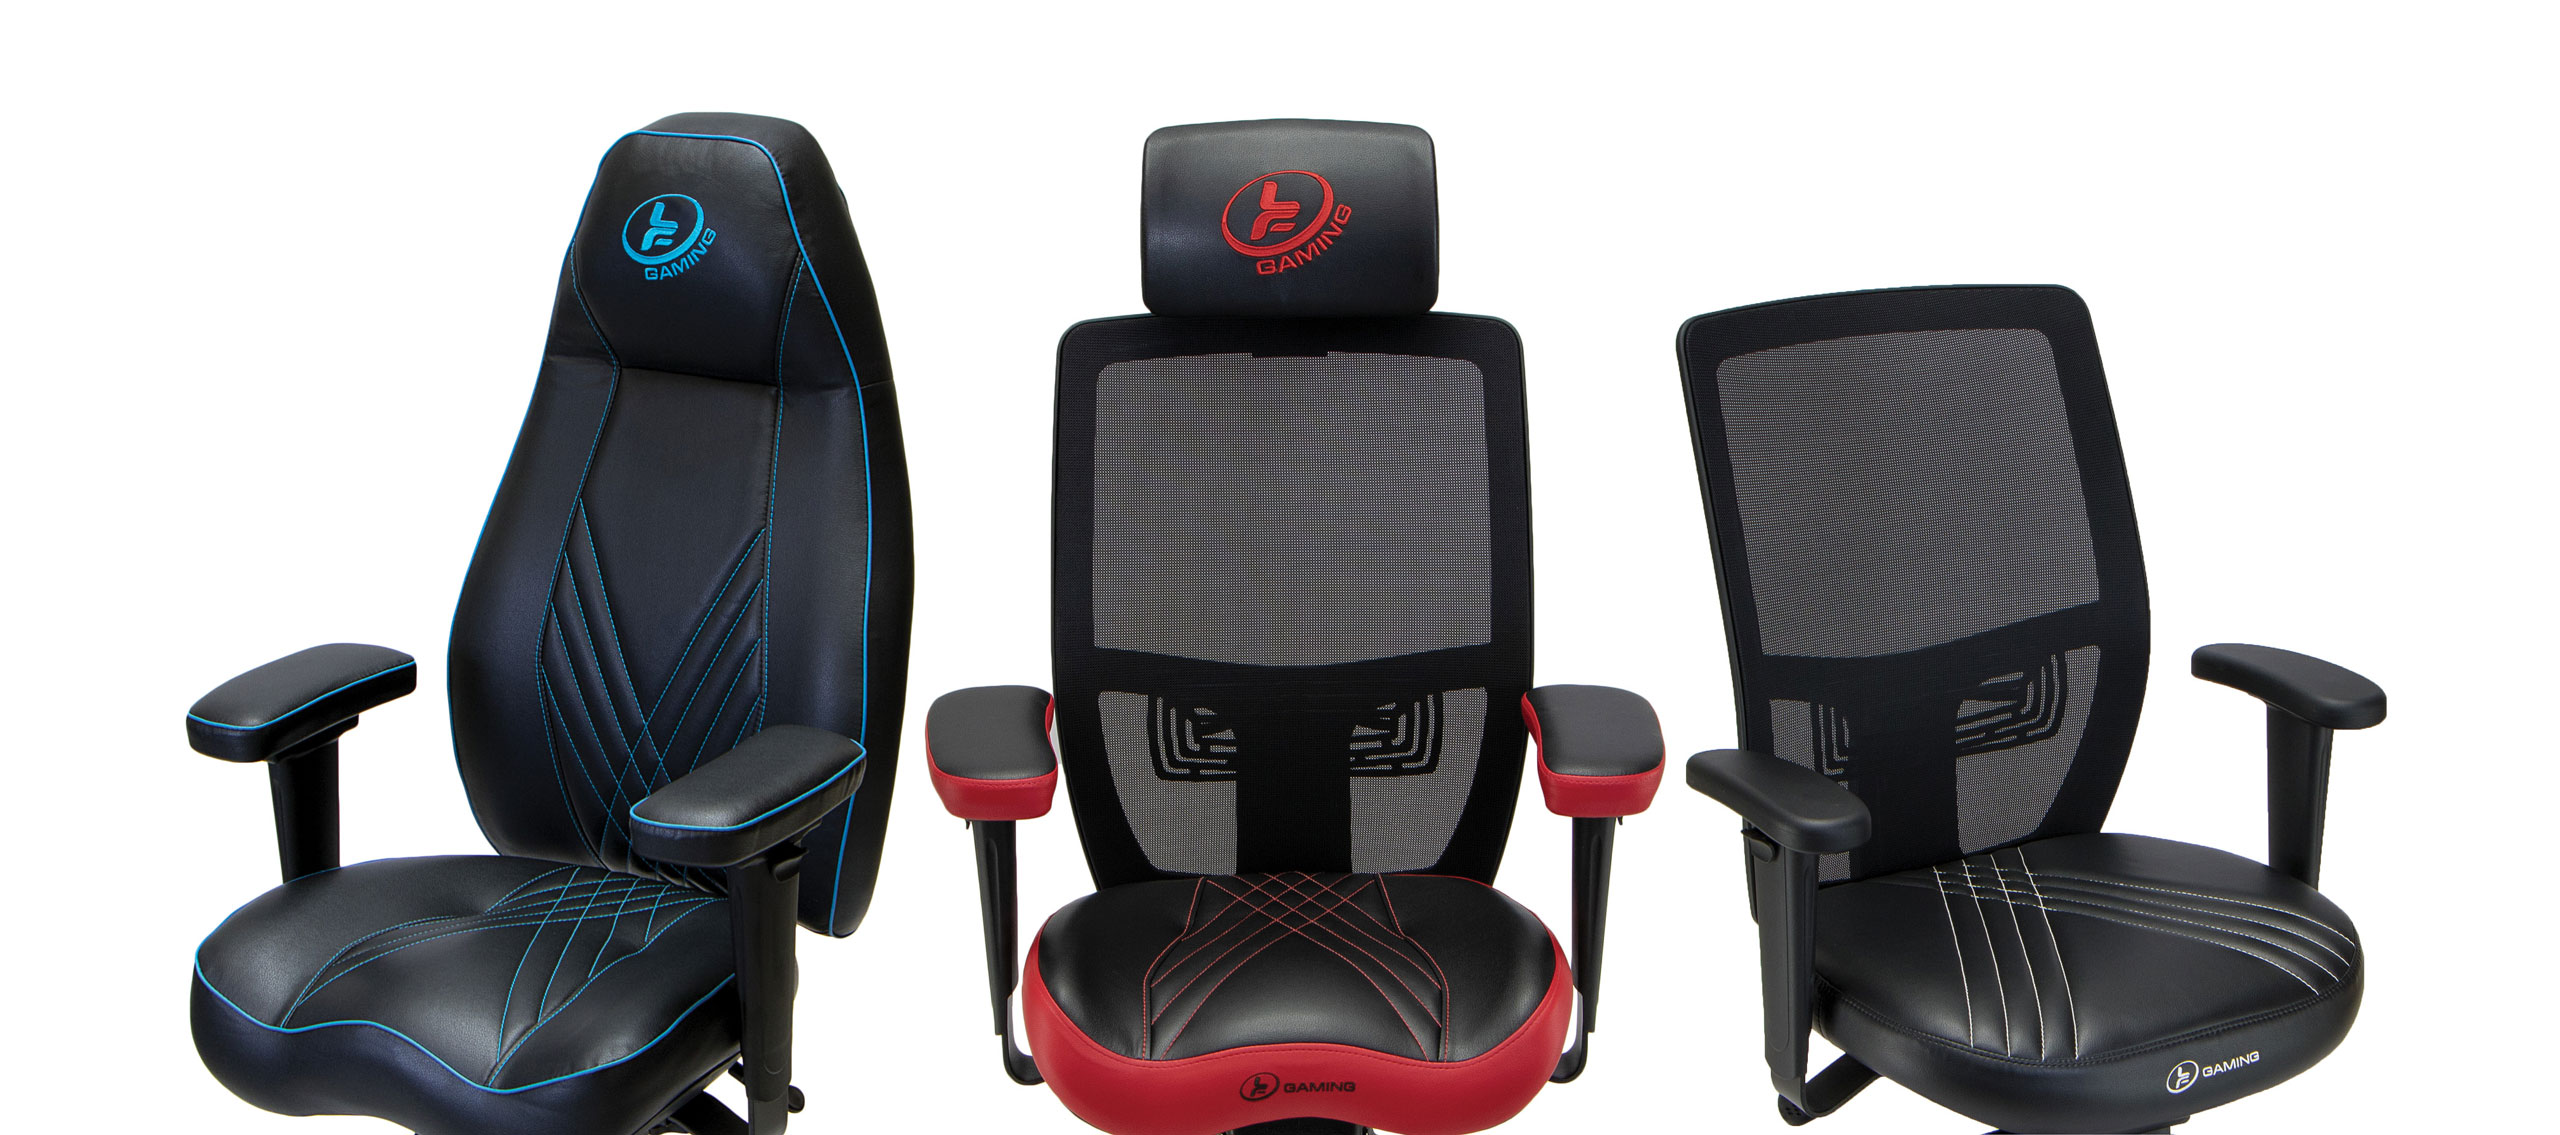 Chairs Comfortable Lf A Chair With Comfort And Style Lf Gaming Chairs At E3